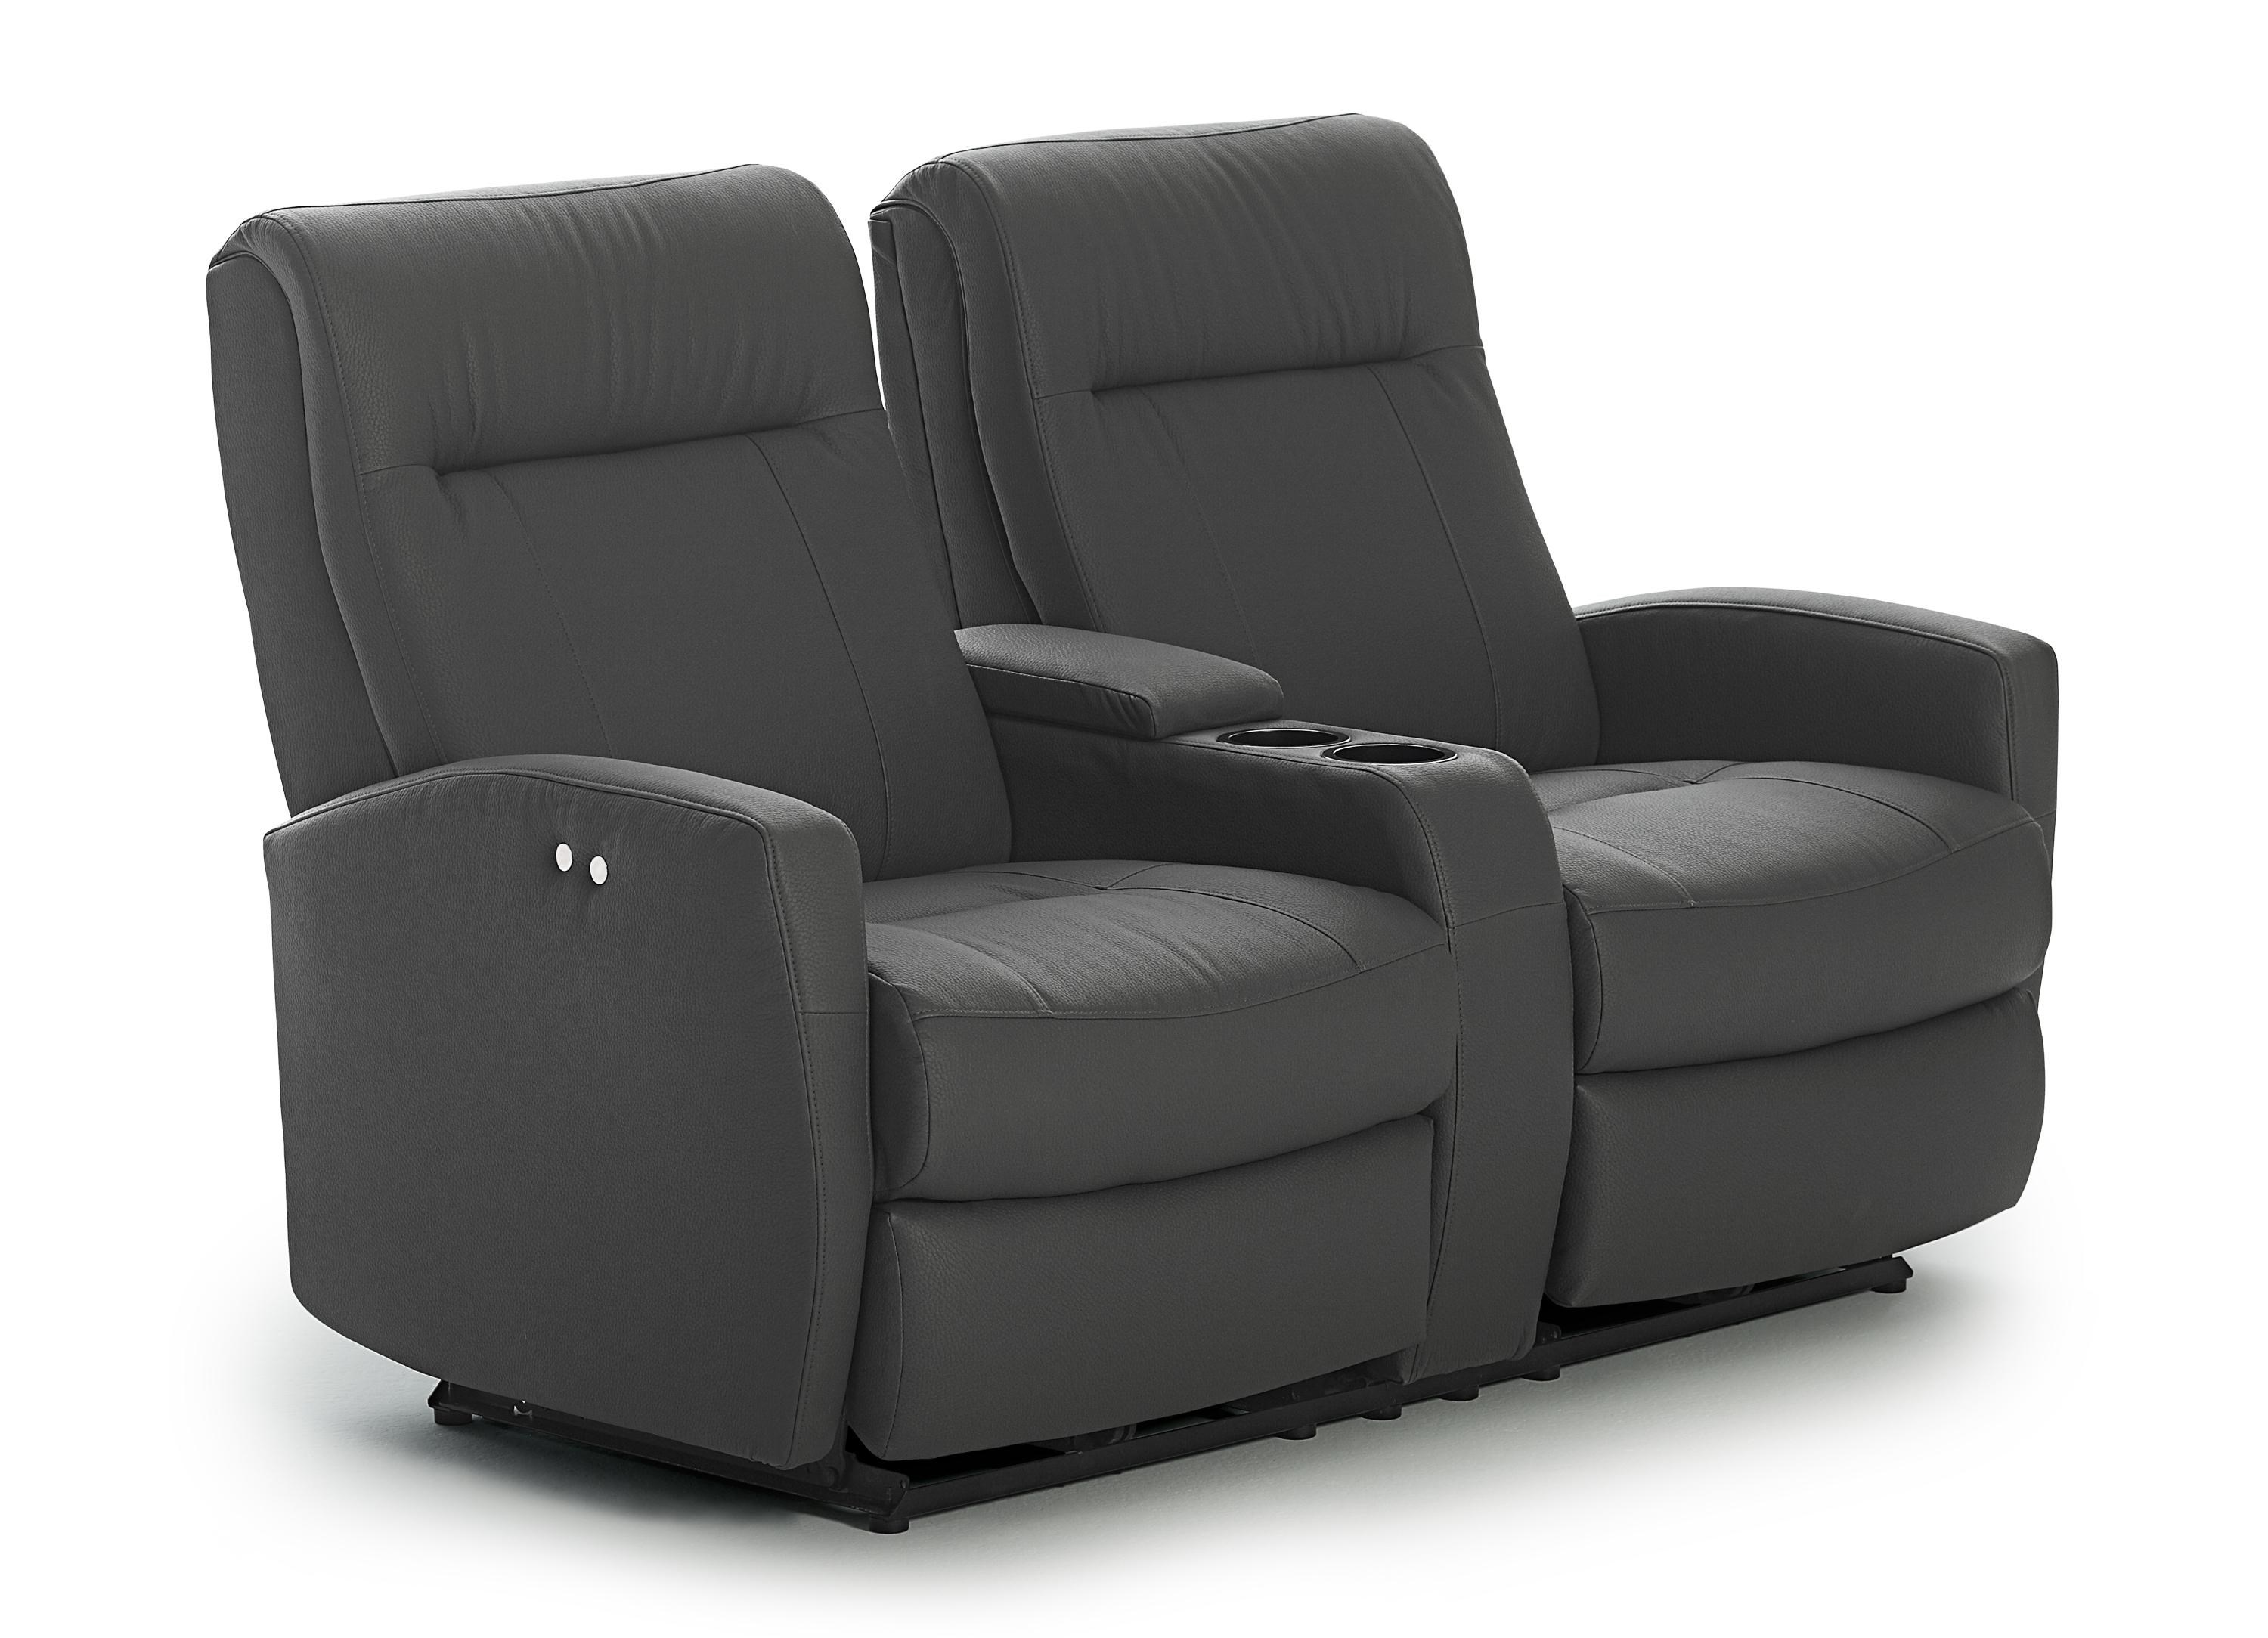 Contemporary Power Rocking Reclining Console Loveseat with Power Tilt Headrests and USB Charging Ports